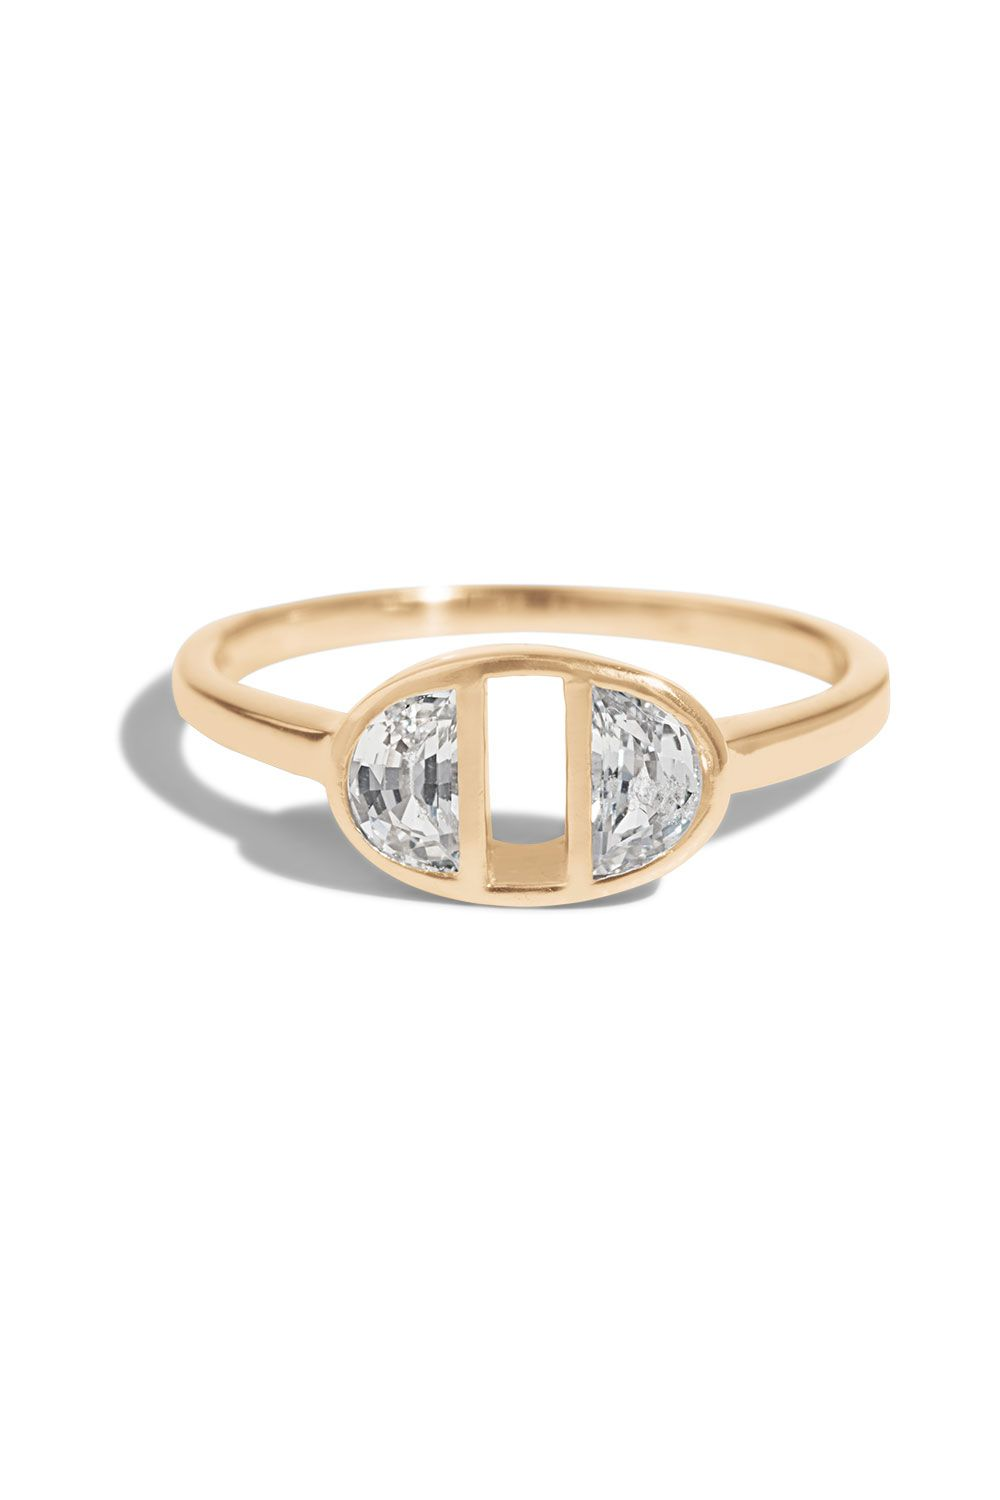 Half Moon Dyad Ring In 2018 Ethical Wedding Engagement Rings